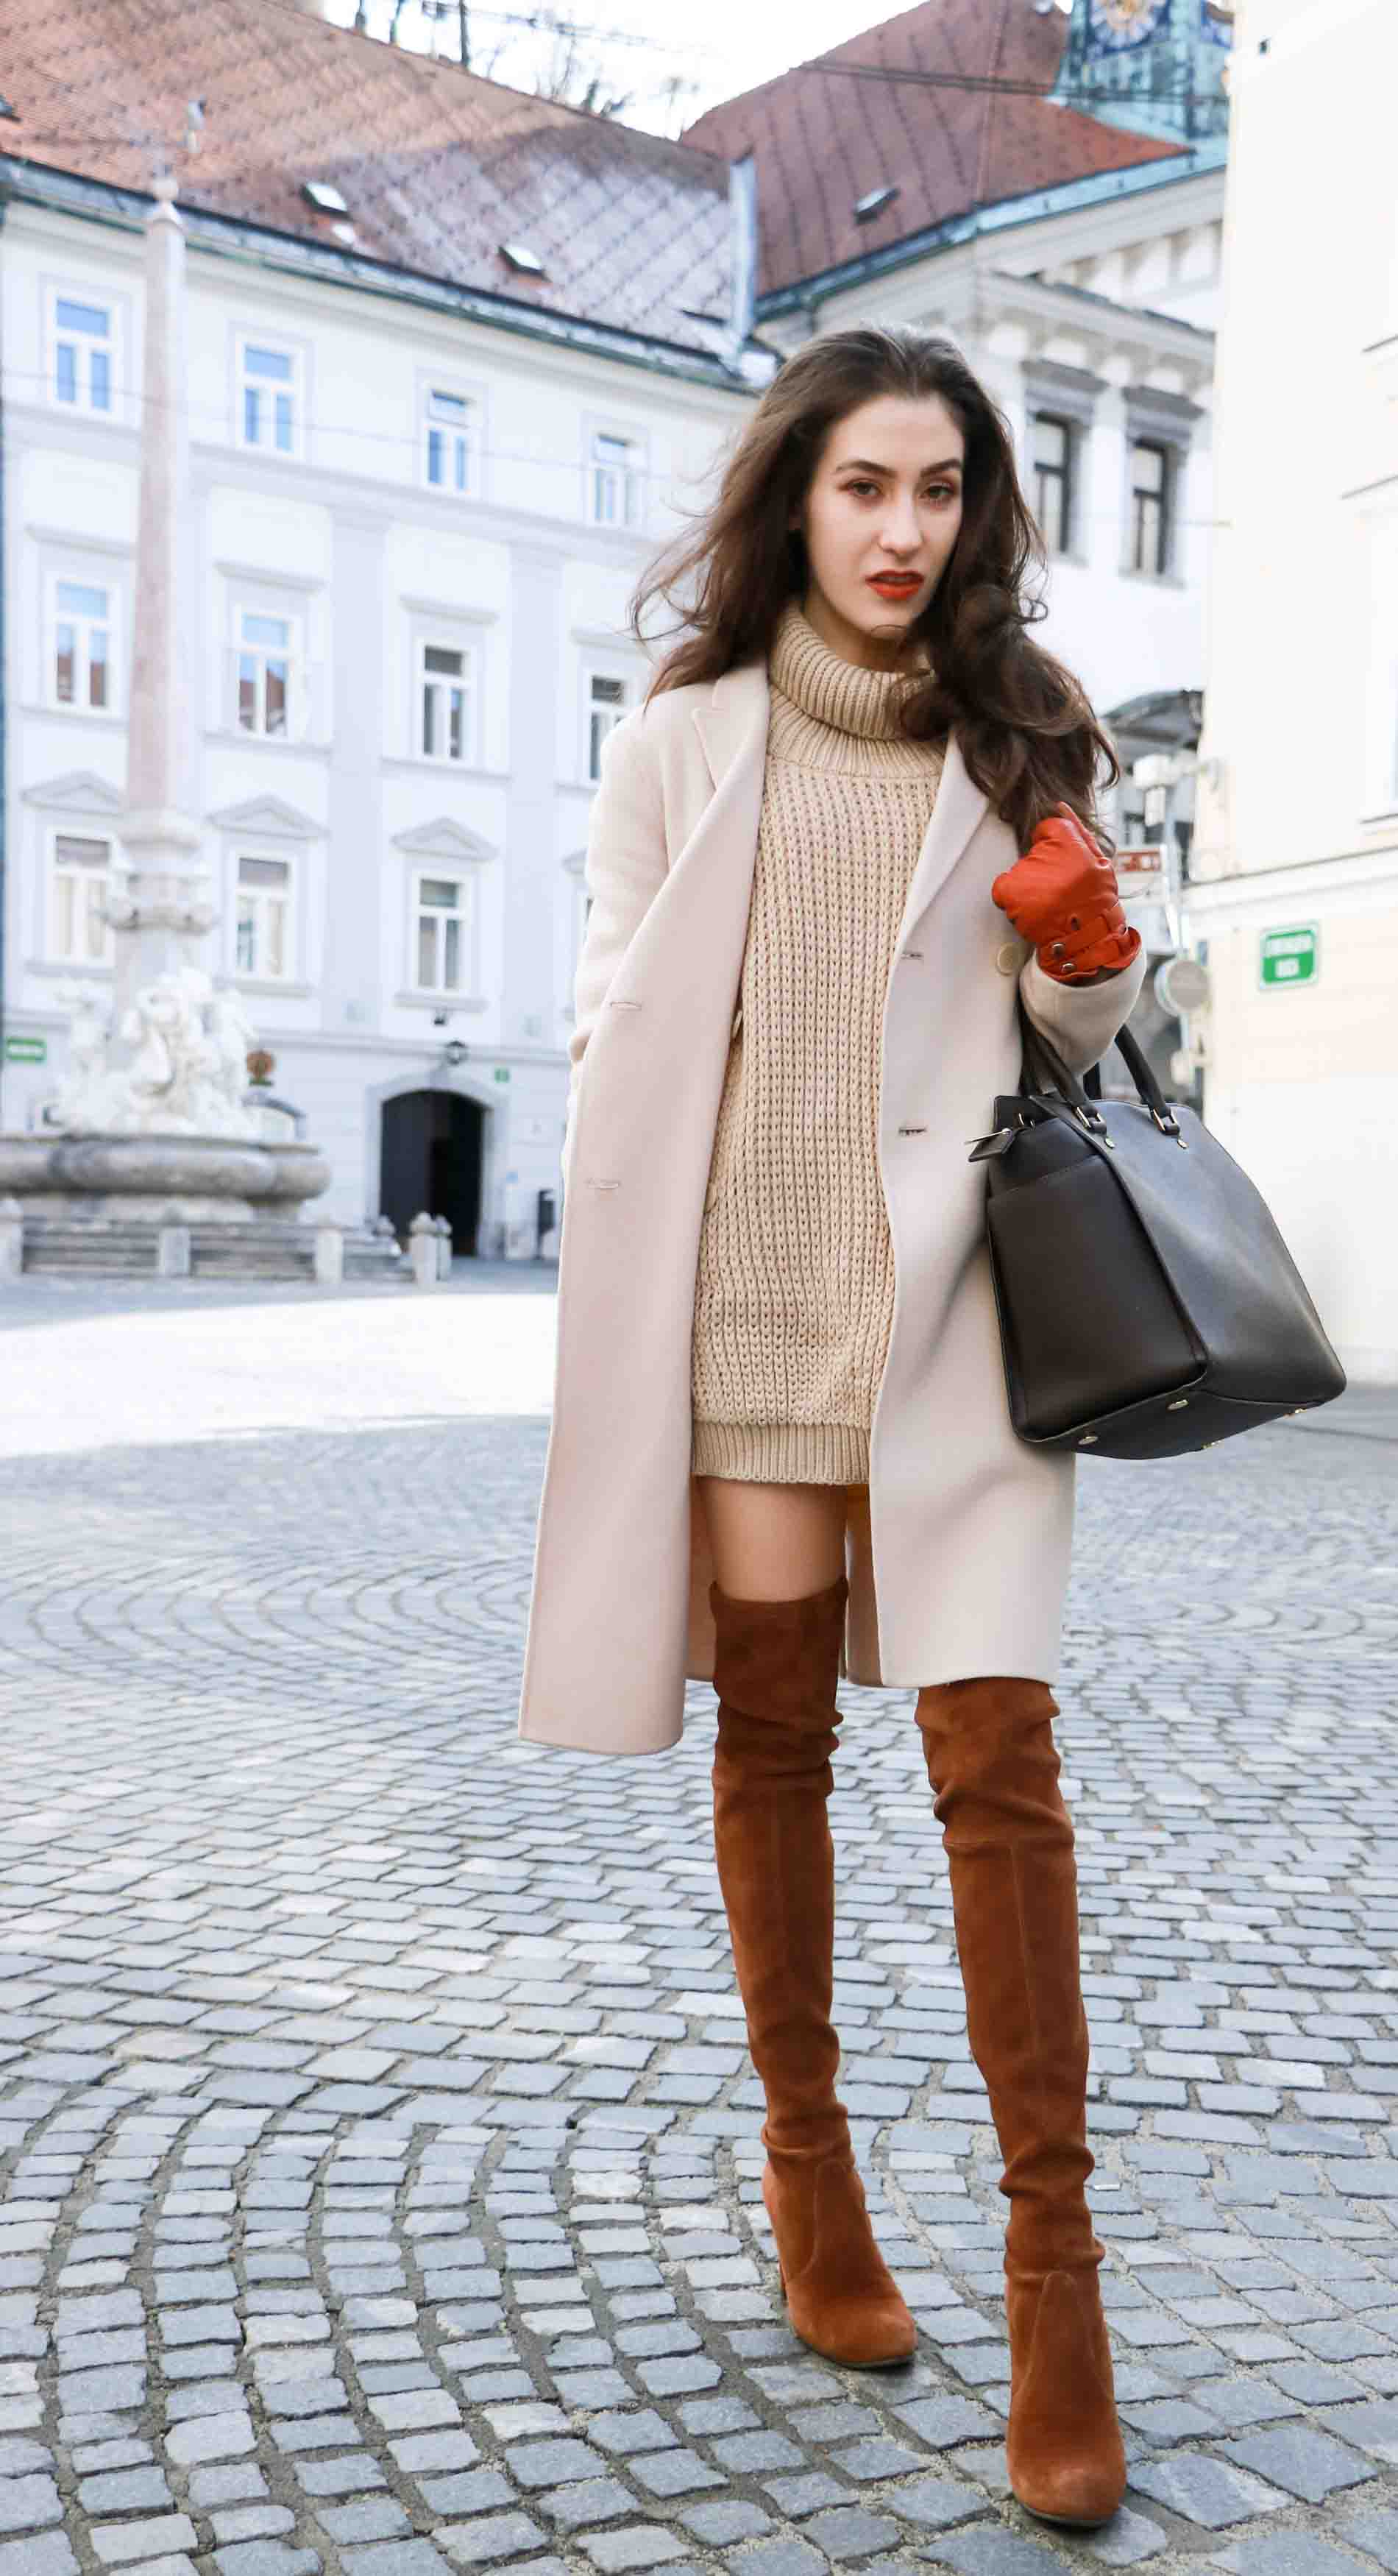 Fashion Blogger Veronika Lipar of Brunette from Wall wearing outfit that is always in fashion